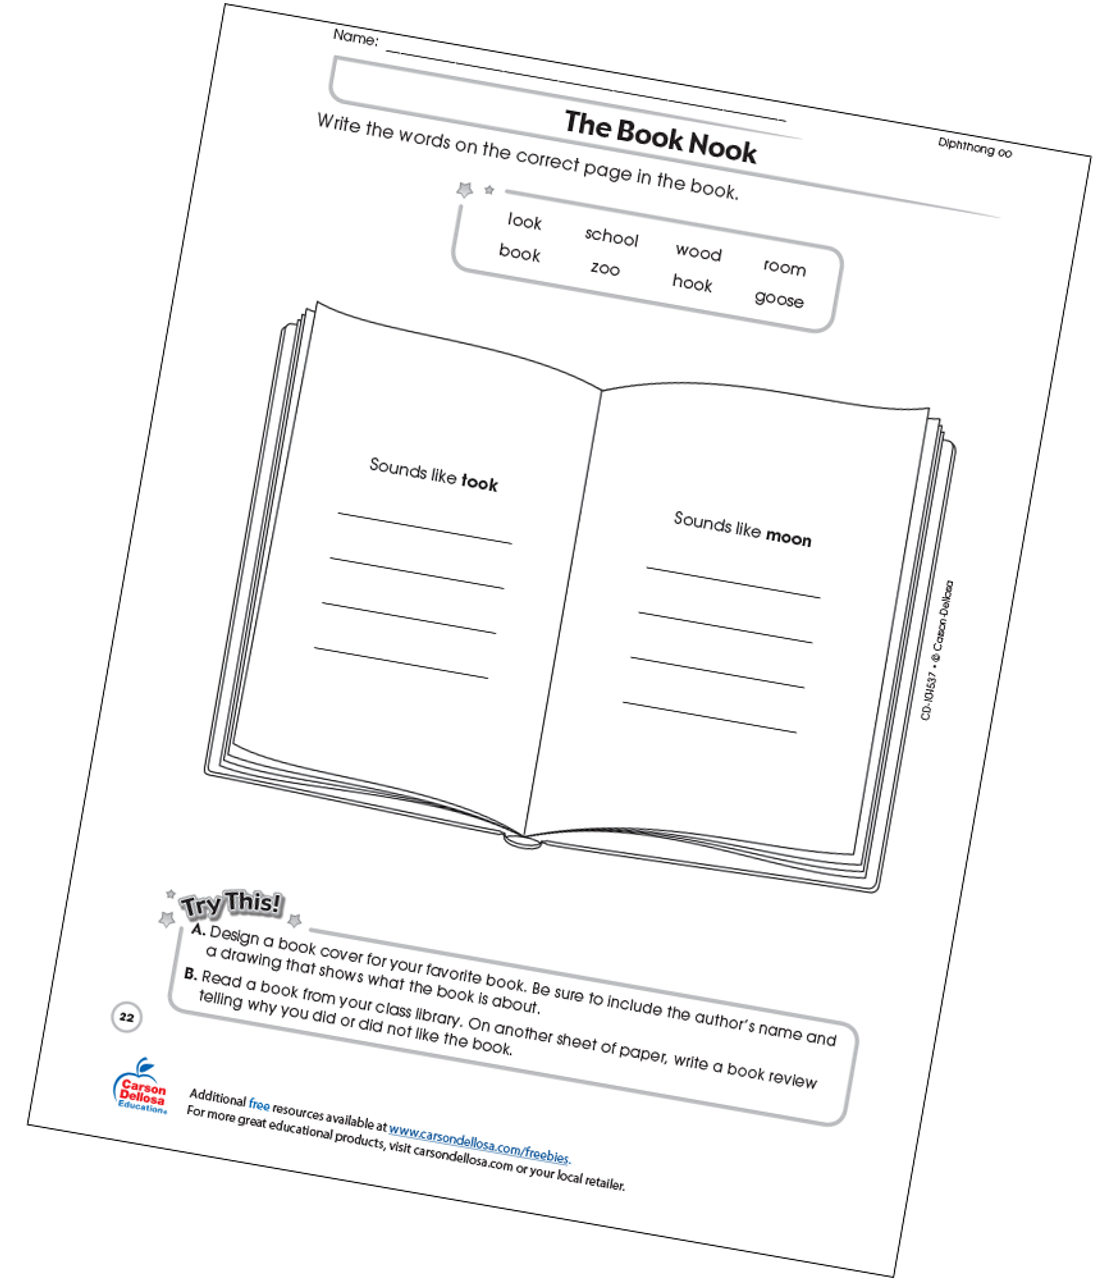 photo regarding Printable Books for 2nd Graders named The Guide Nook Free of charge Printable Carson Dellosa